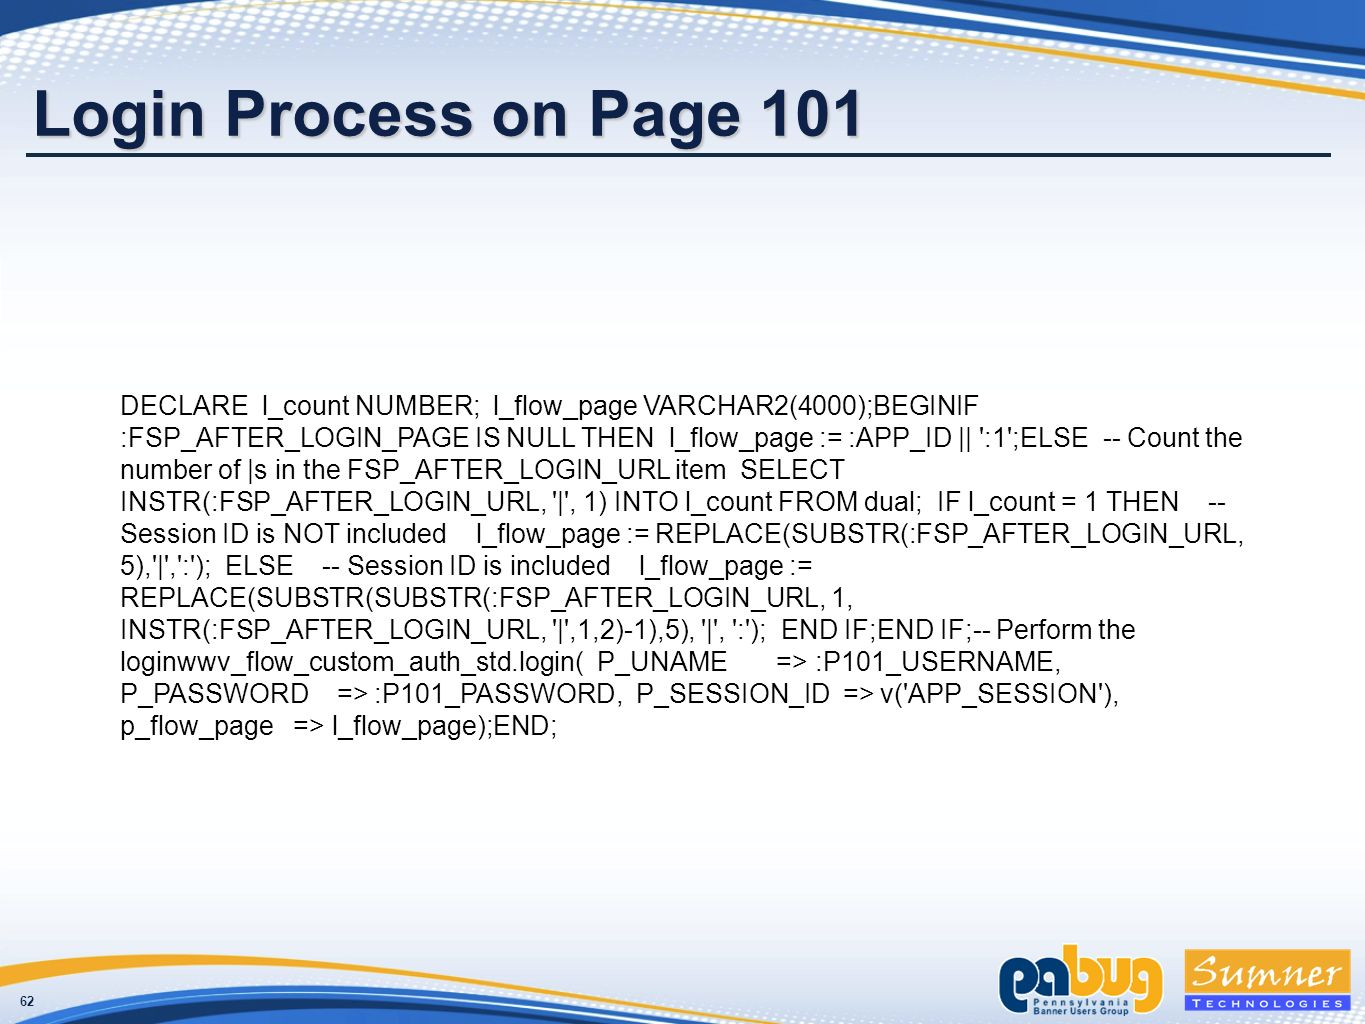 62 Login Process on Page 101 DECLARE l_count NUMBER; l_flow_page VARCHAR2(4000);BEGINIF :FSP_AFTER_LOGIN_PAGE IS NULL THEN l_flow_page := :APP_ID || :1 ;ELSE -- Count the number of |s in the FSP_AFTER_LOGIN_URL item SELECT INSTR(:FSP_AFTER_LOGIN_URL, | , 1) INTO l_count FROM dual; IF l_count = 1 THEN -- Session ID is NOT included l_flow_page := REPLACE(SUBSTR(:FSP_AFTER_LOGIN_URL, 5), | , : ); ELSE -- Session ID is included l_flow_page := REPLACE(SUBSTR(SUBSTR(:FSP_AFTER_LOGIN_URL, 1, INSTR(:FSP_AFTER_LOGIN_URL, | ,1,2)-1),5), | , : ); END IF;END IF;-- Perform the loginwwv_flow_custom_auth_std.login( P_UNAME => :P101_USERNAME, P_PASSWORD => :P101_PASSWORD, P_SESSION_ID => v( APP_SESSION ), p_flow_page => l_flow_page);END;